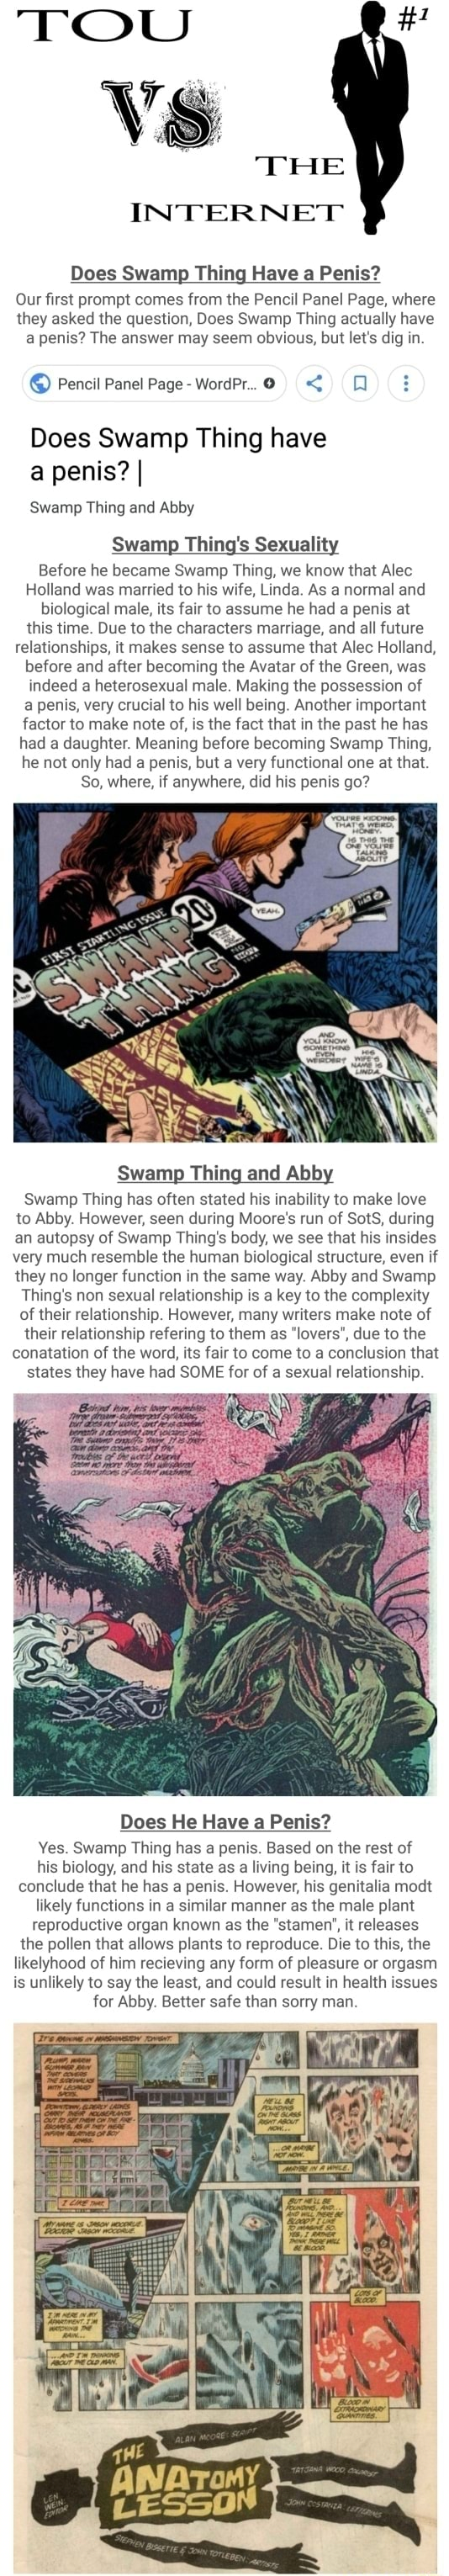 TOU THE INTERNET Does Swamp Thing Have a Penis Our first prompt comes from the Pencil Panel Page, where they asked the question, Does Swamp Thing actually have a penis The answer may seem obvious, but let's dig in. Pencil Panel Page WordPr  Does Swamp Thing have a penis I Swamp Thing and Abby Swamp g's Sexuality Before he became Swamp Thing, we know that Alec Holland was married to his wife, Linda. As a normal and biological male, its fair to assume he had a penis at this time. Due to the characters marriage, and all future relationships, it makes sense to assume that Alec Holland, before and after becoming the Avatar of the Green, was indeed a heterosexual male. Making the possession of a penis, very crucial to his well being. Another important factor to make note of, is the fact that in